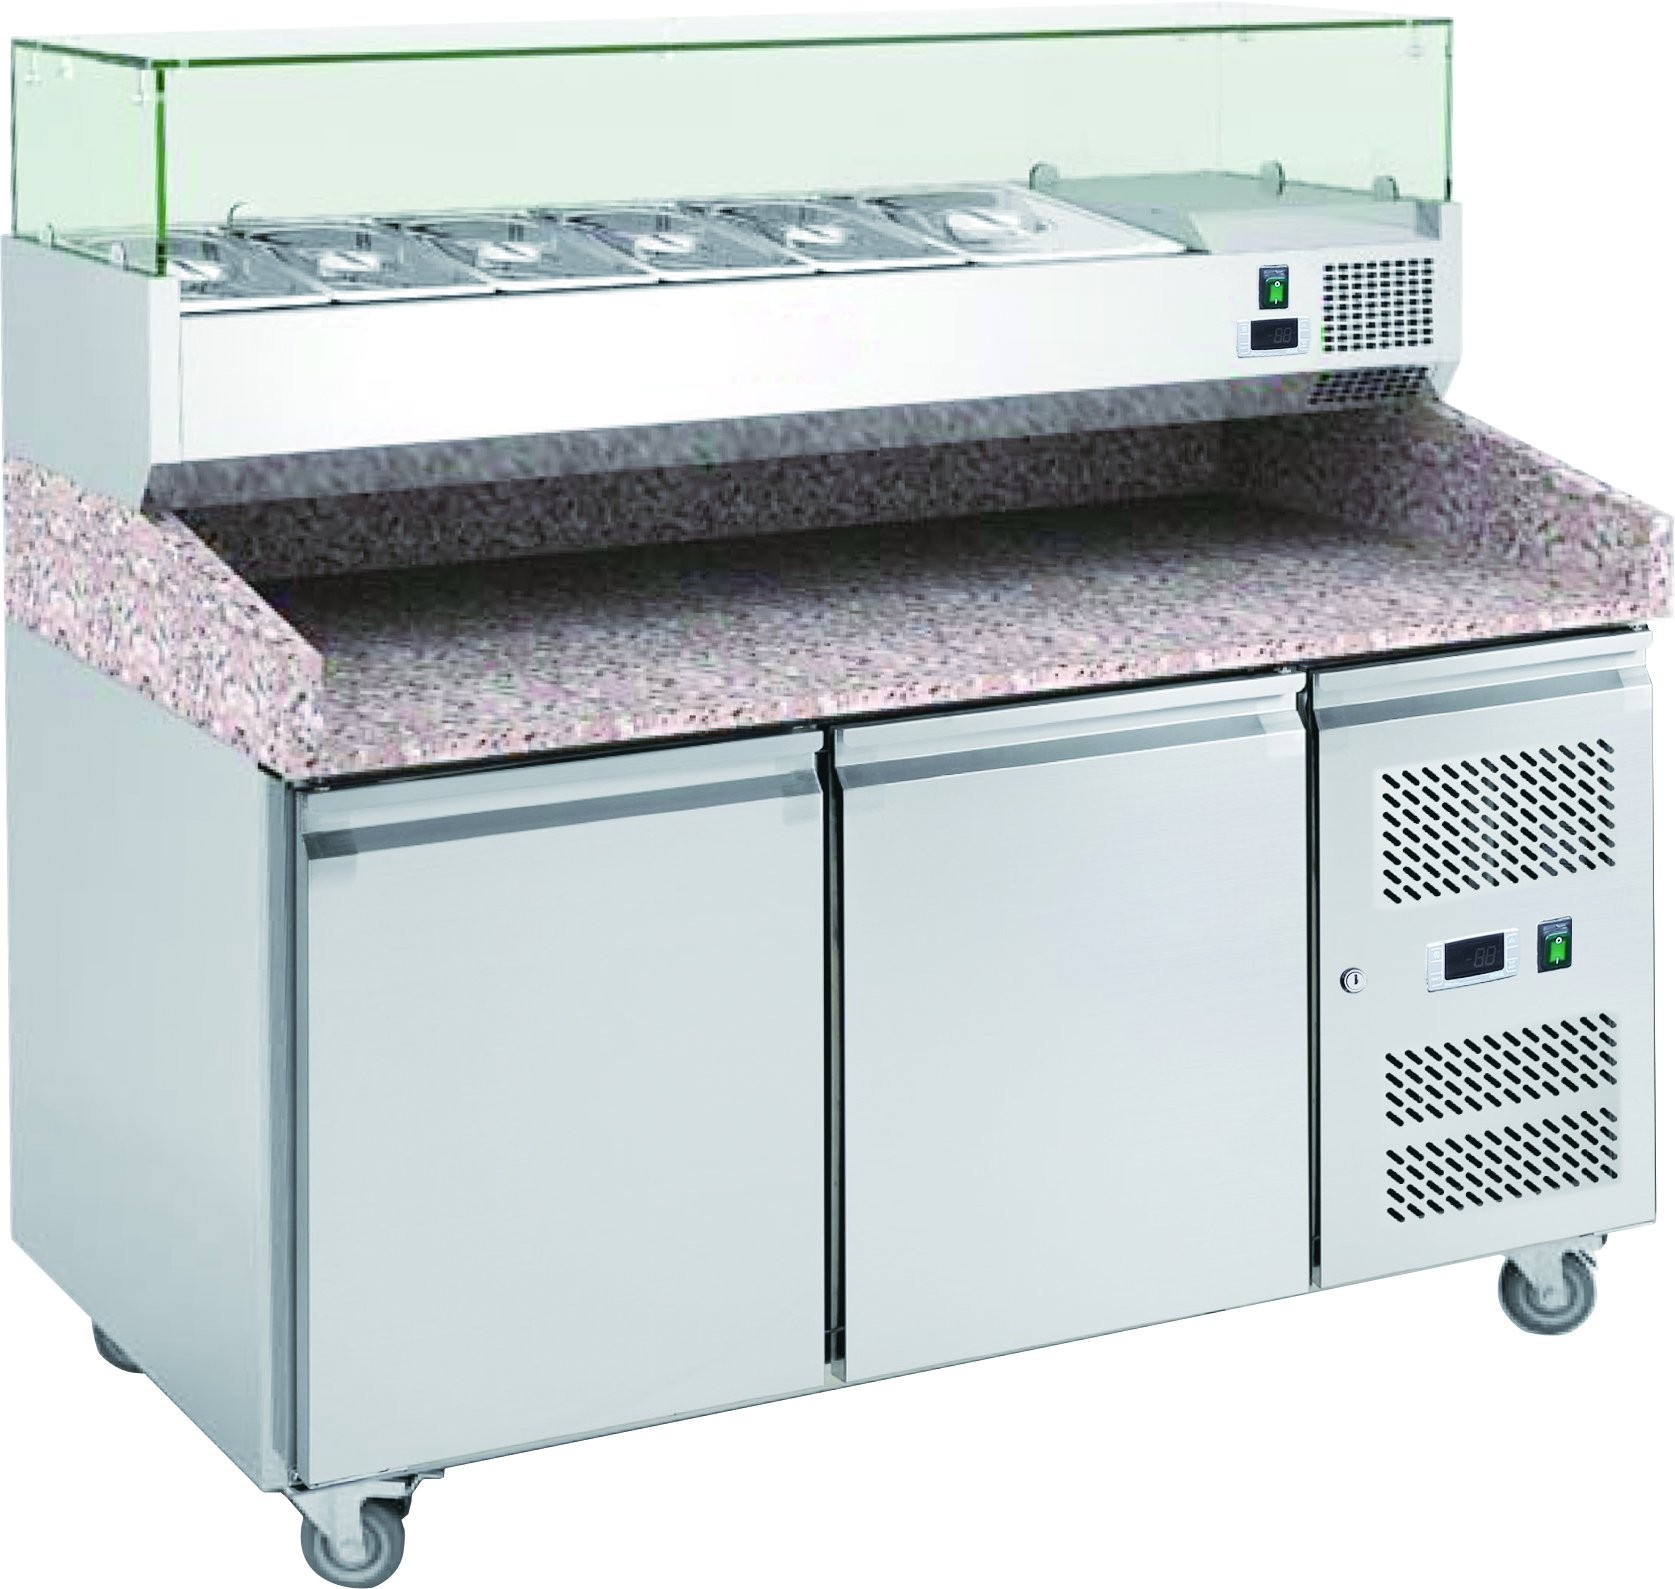 Chefsrange PP2+ 2 Door Pizza Prep Counter with Topping Well